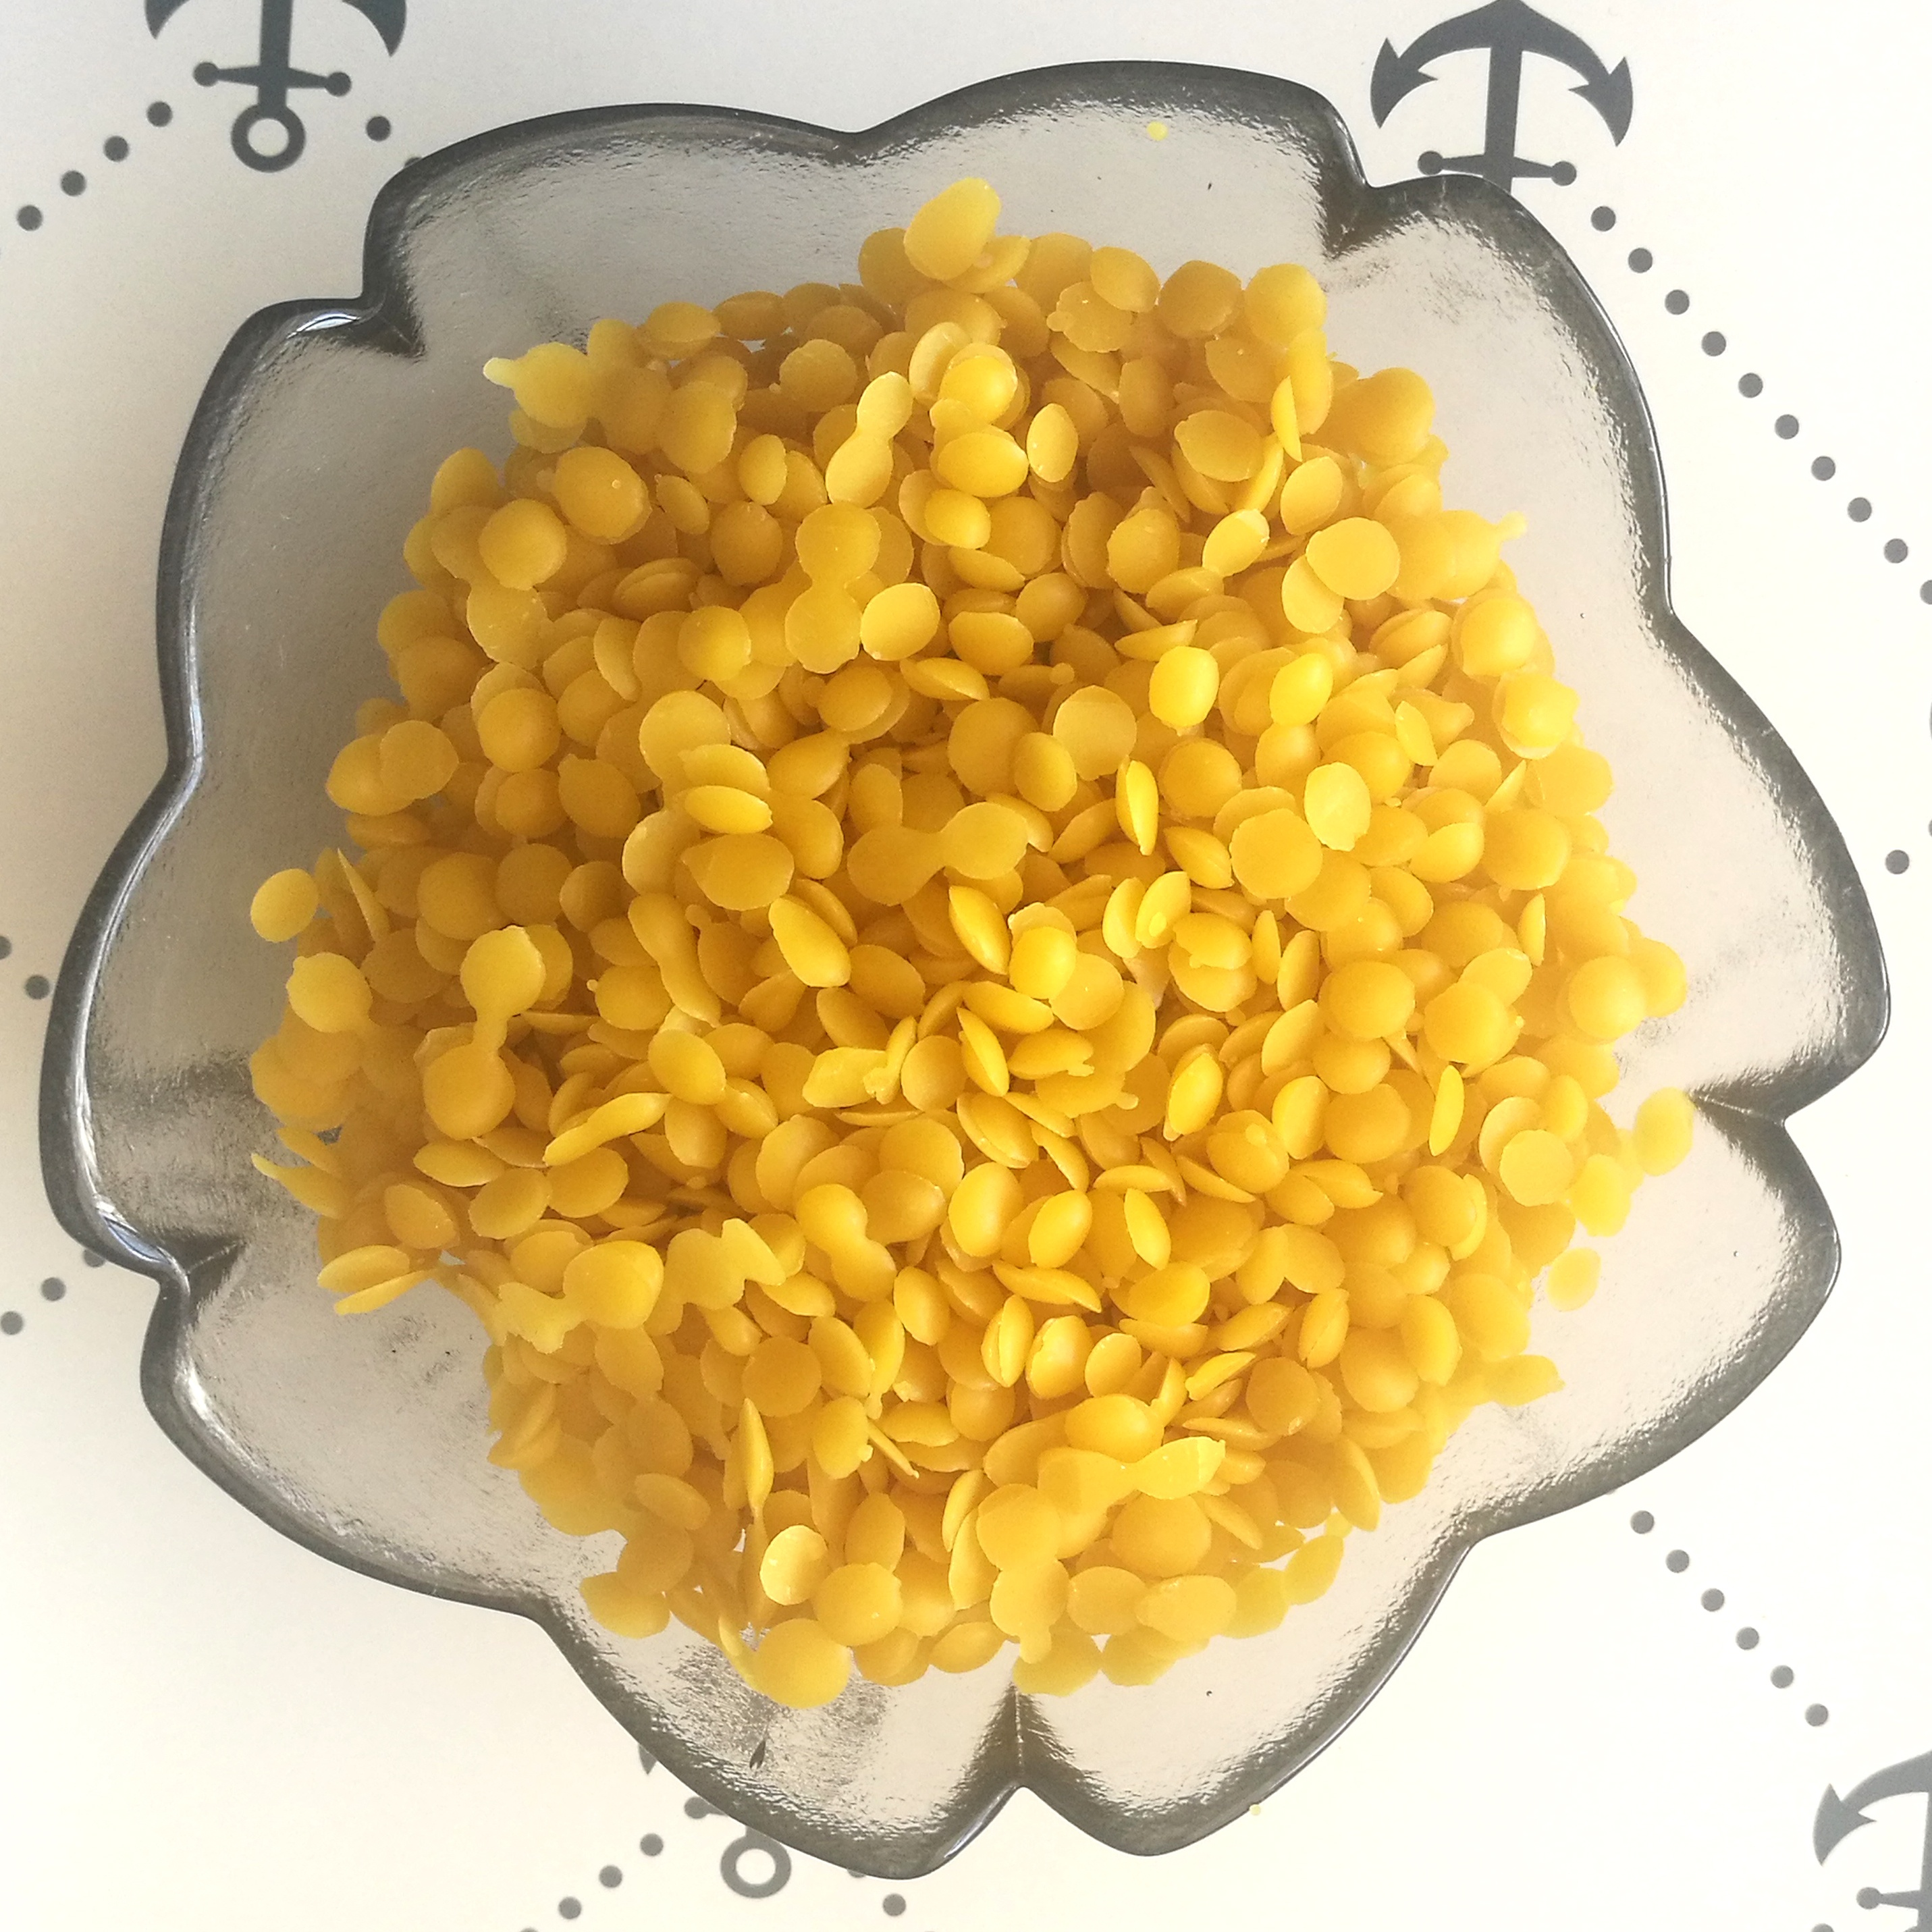 Pure beeswax in handy pellets form 100% organic